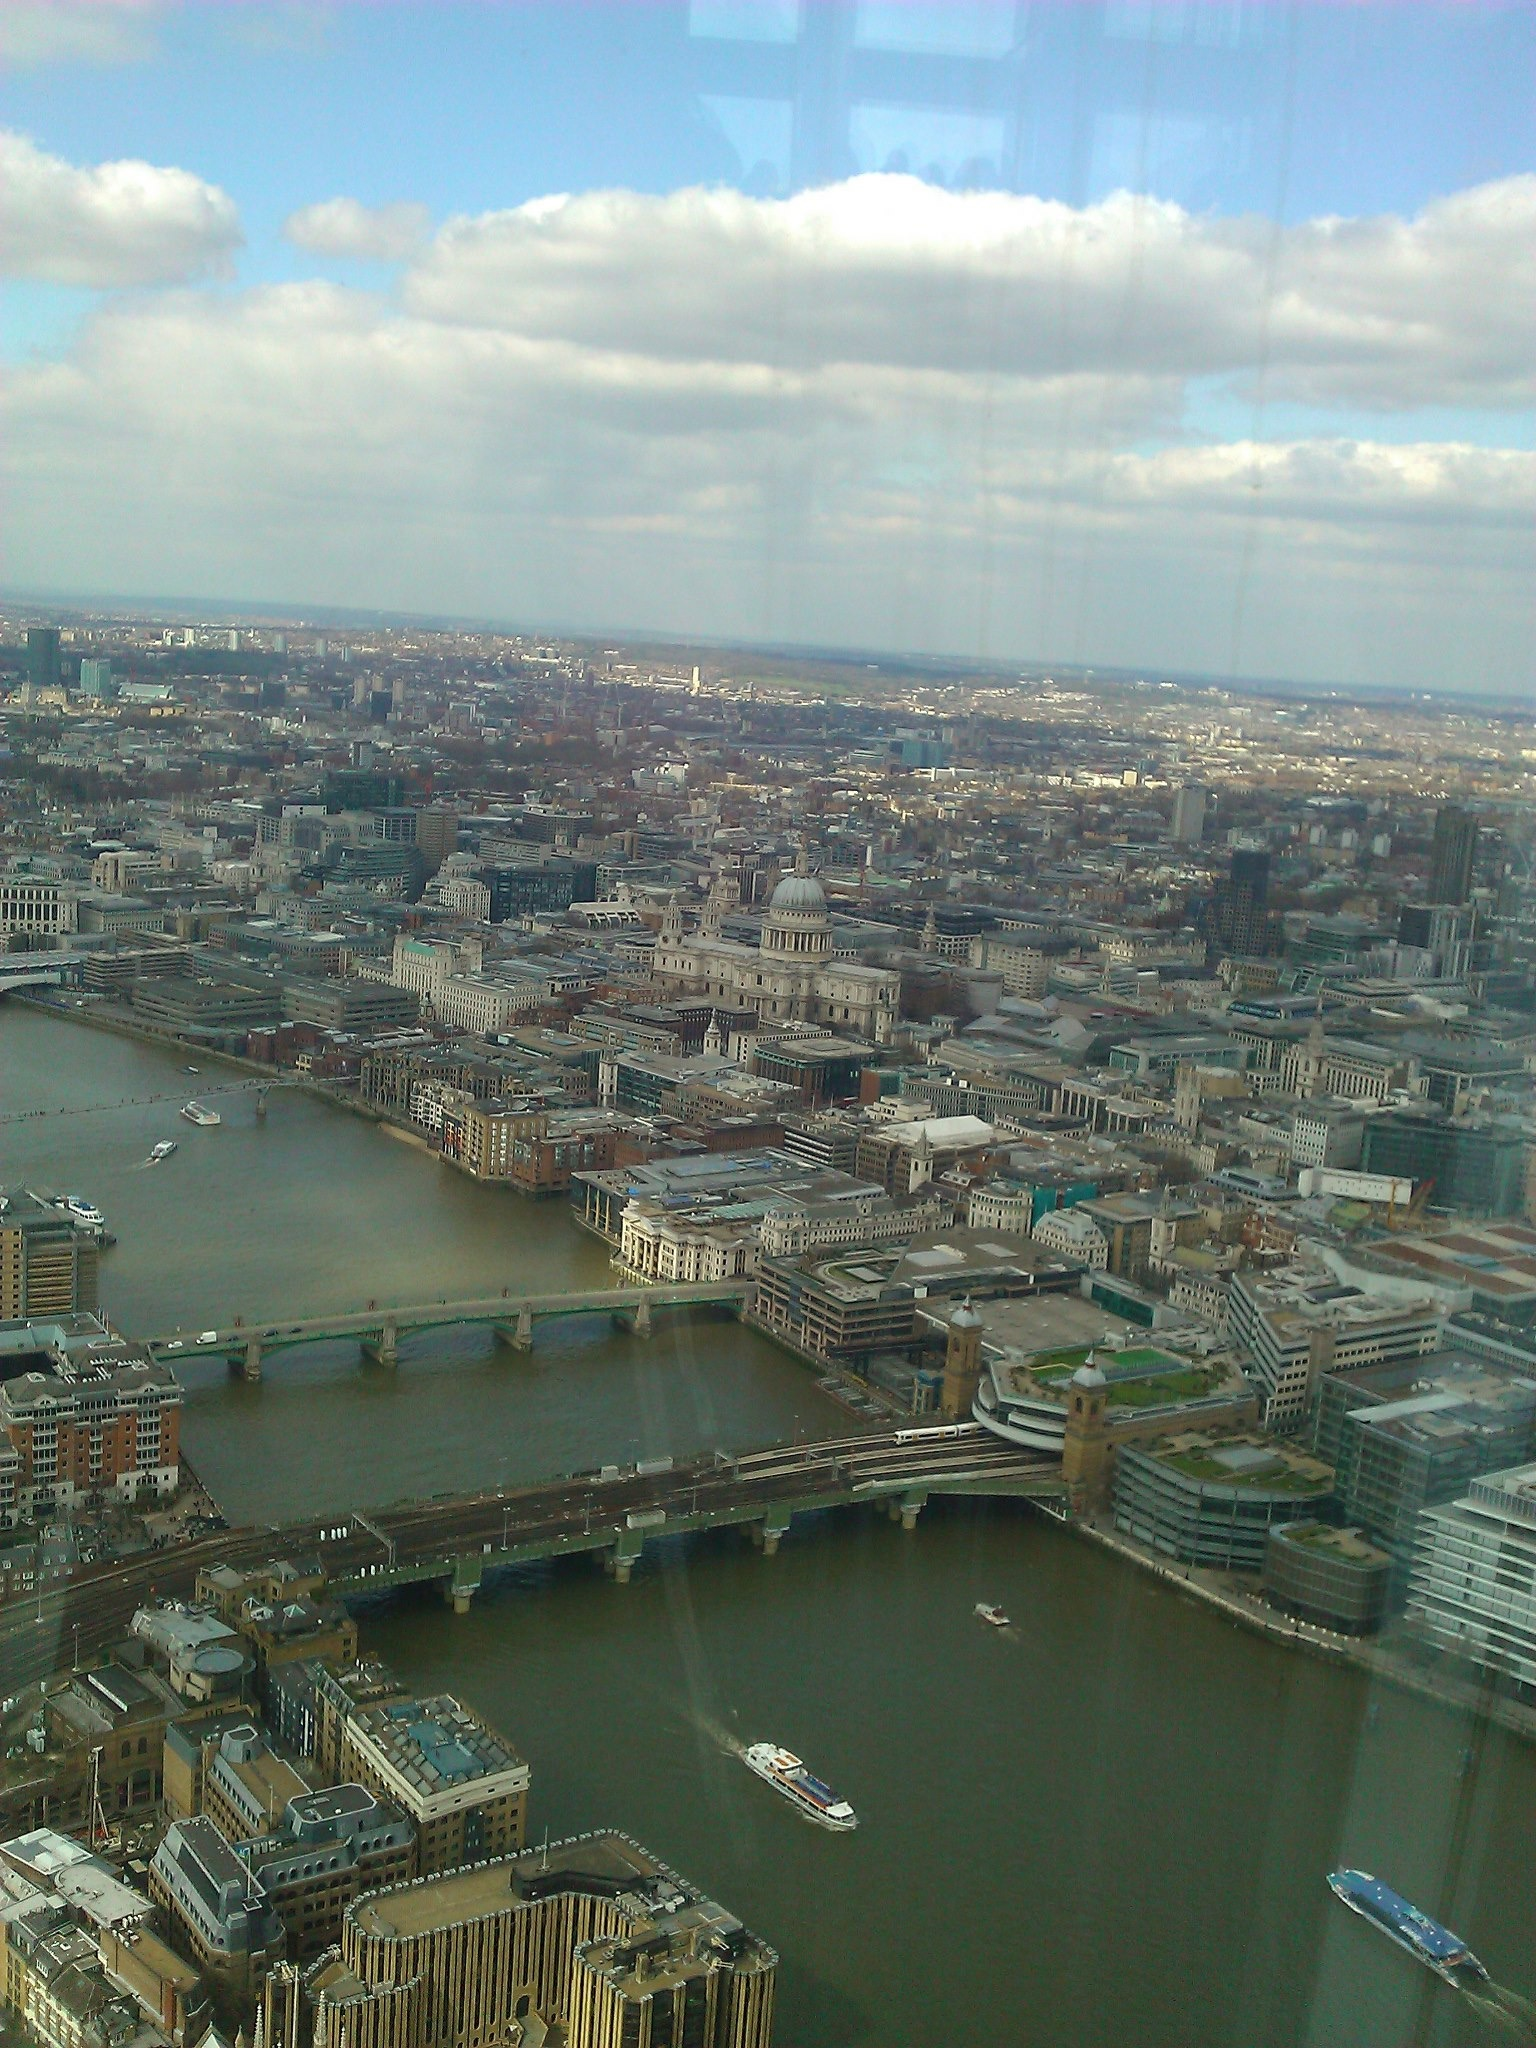 The Shard To Monument ModernDay And Classic Architecture - Incredible 360 degree aerial photography by andrew griffiths